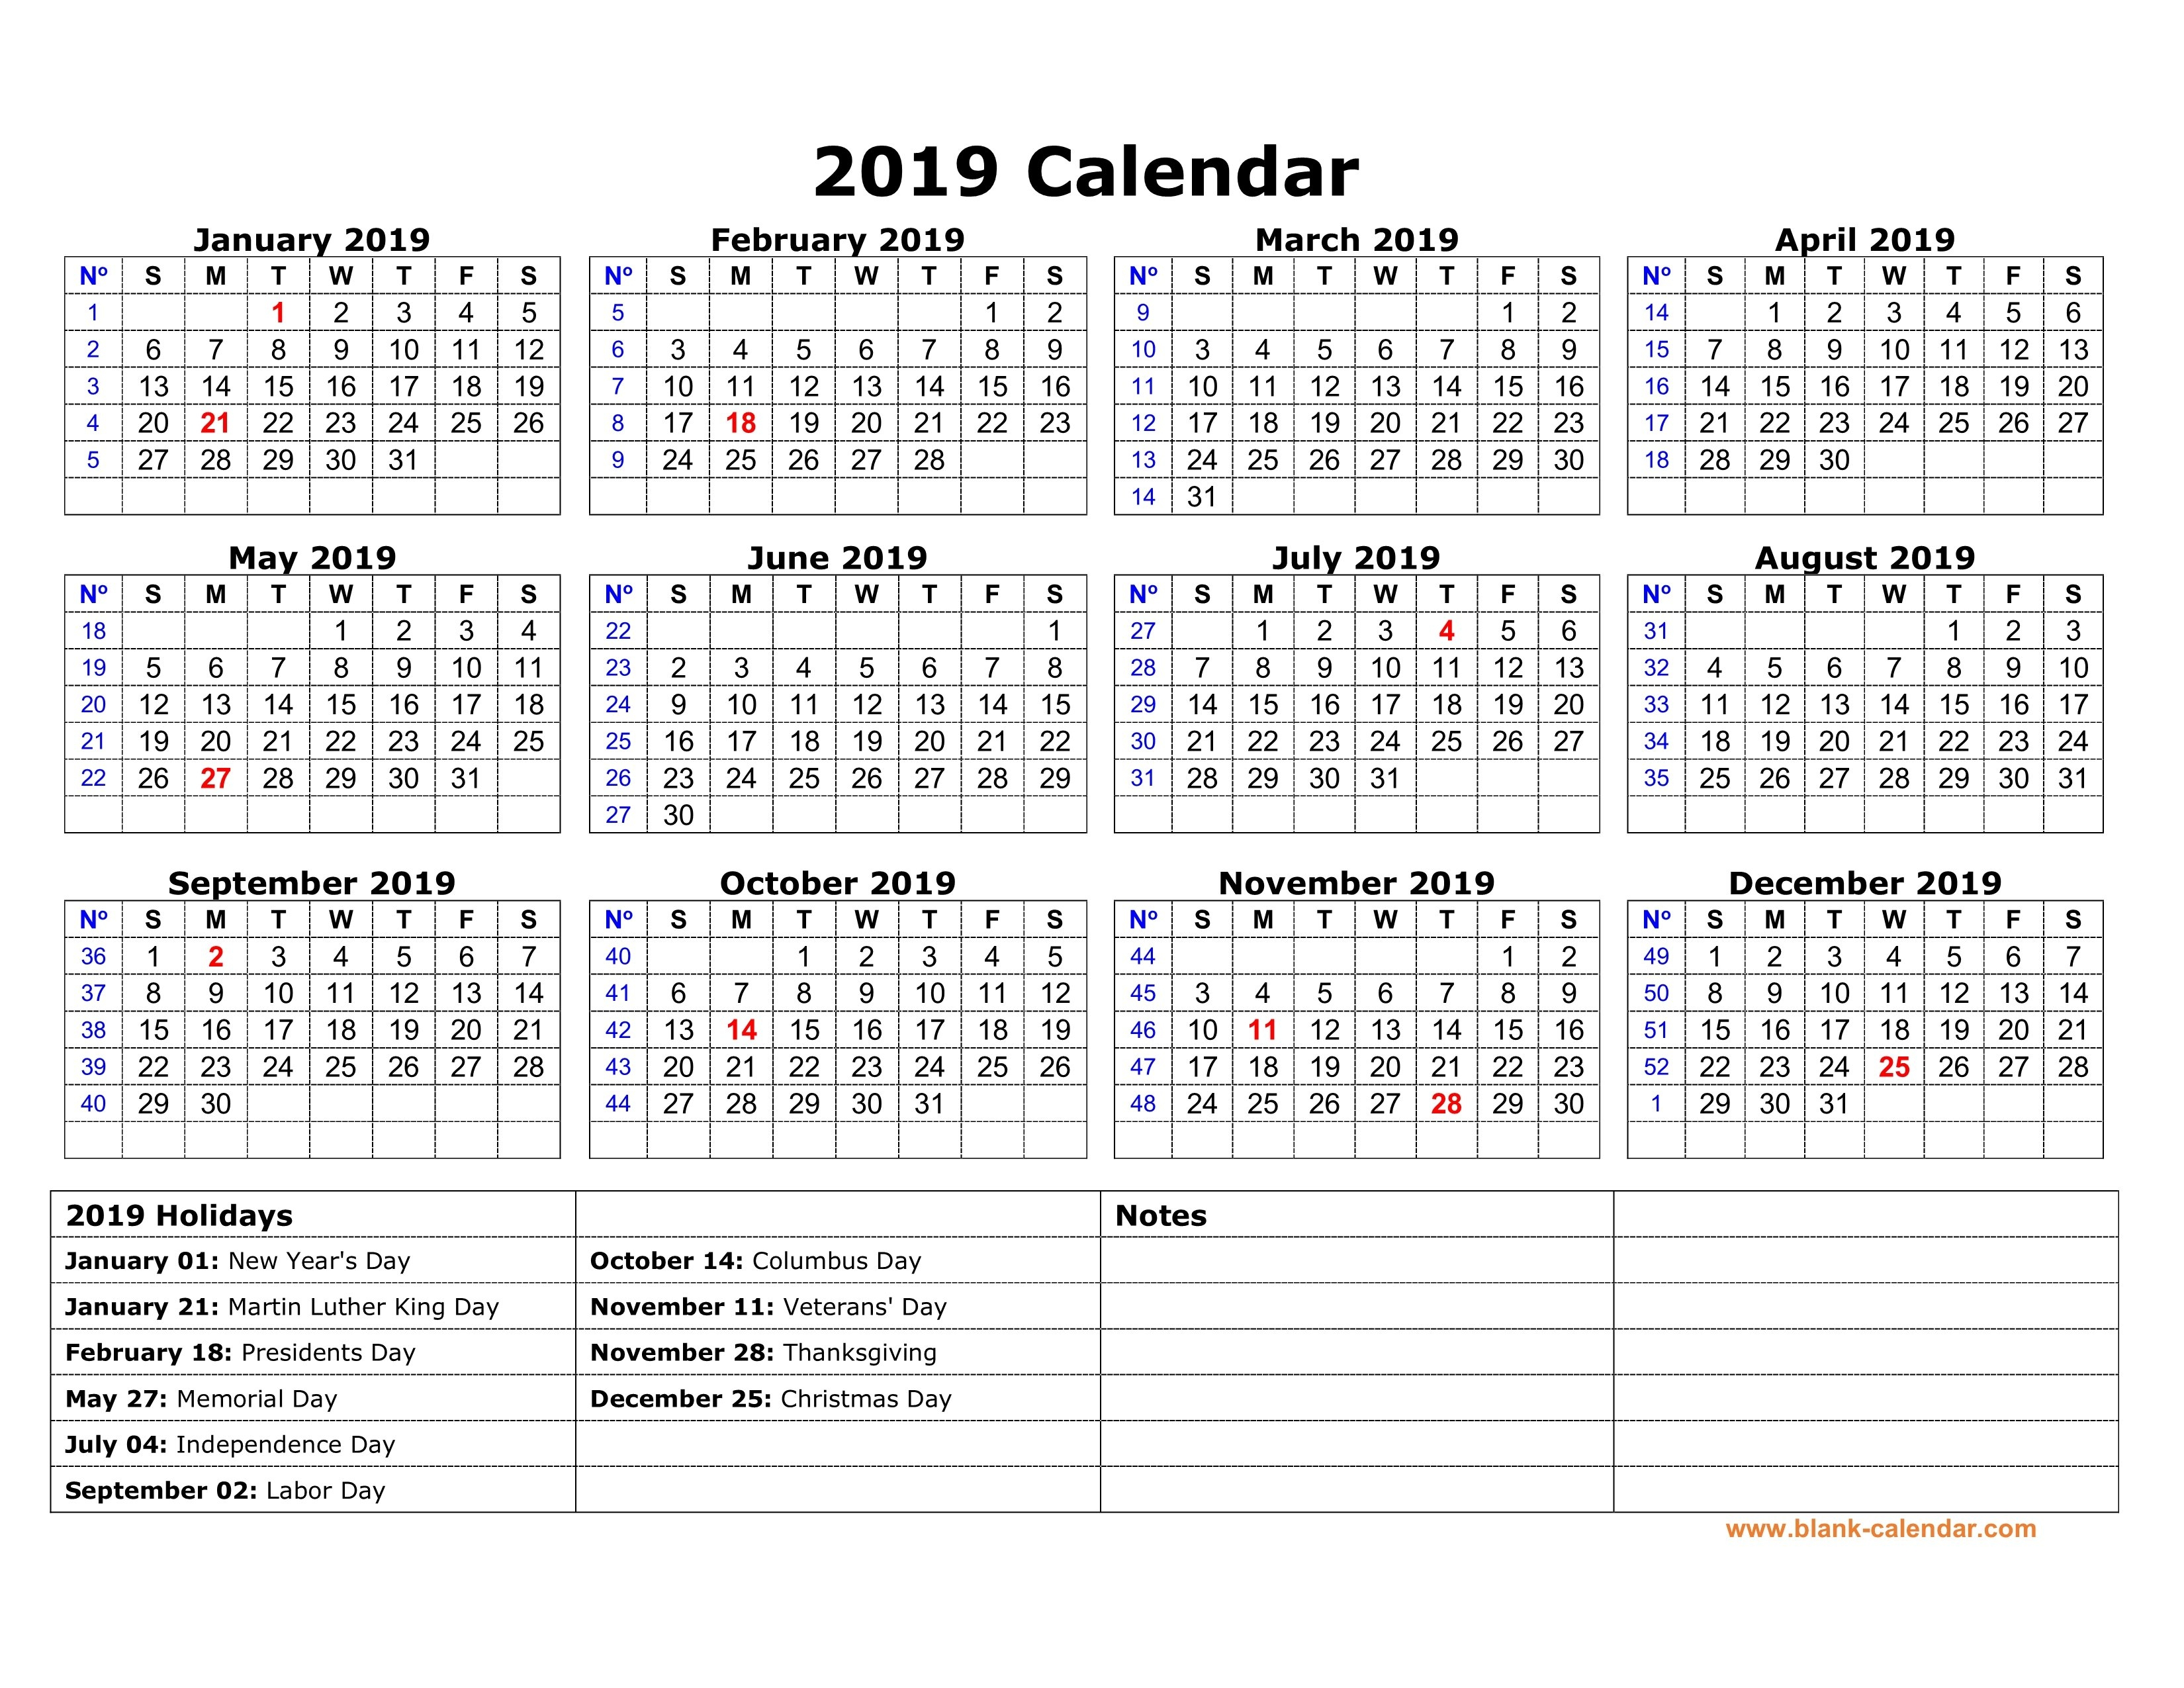 Free Download Printable Calendar 2019 With Us Federal Holidays, One Calendar 2019 With Holidays